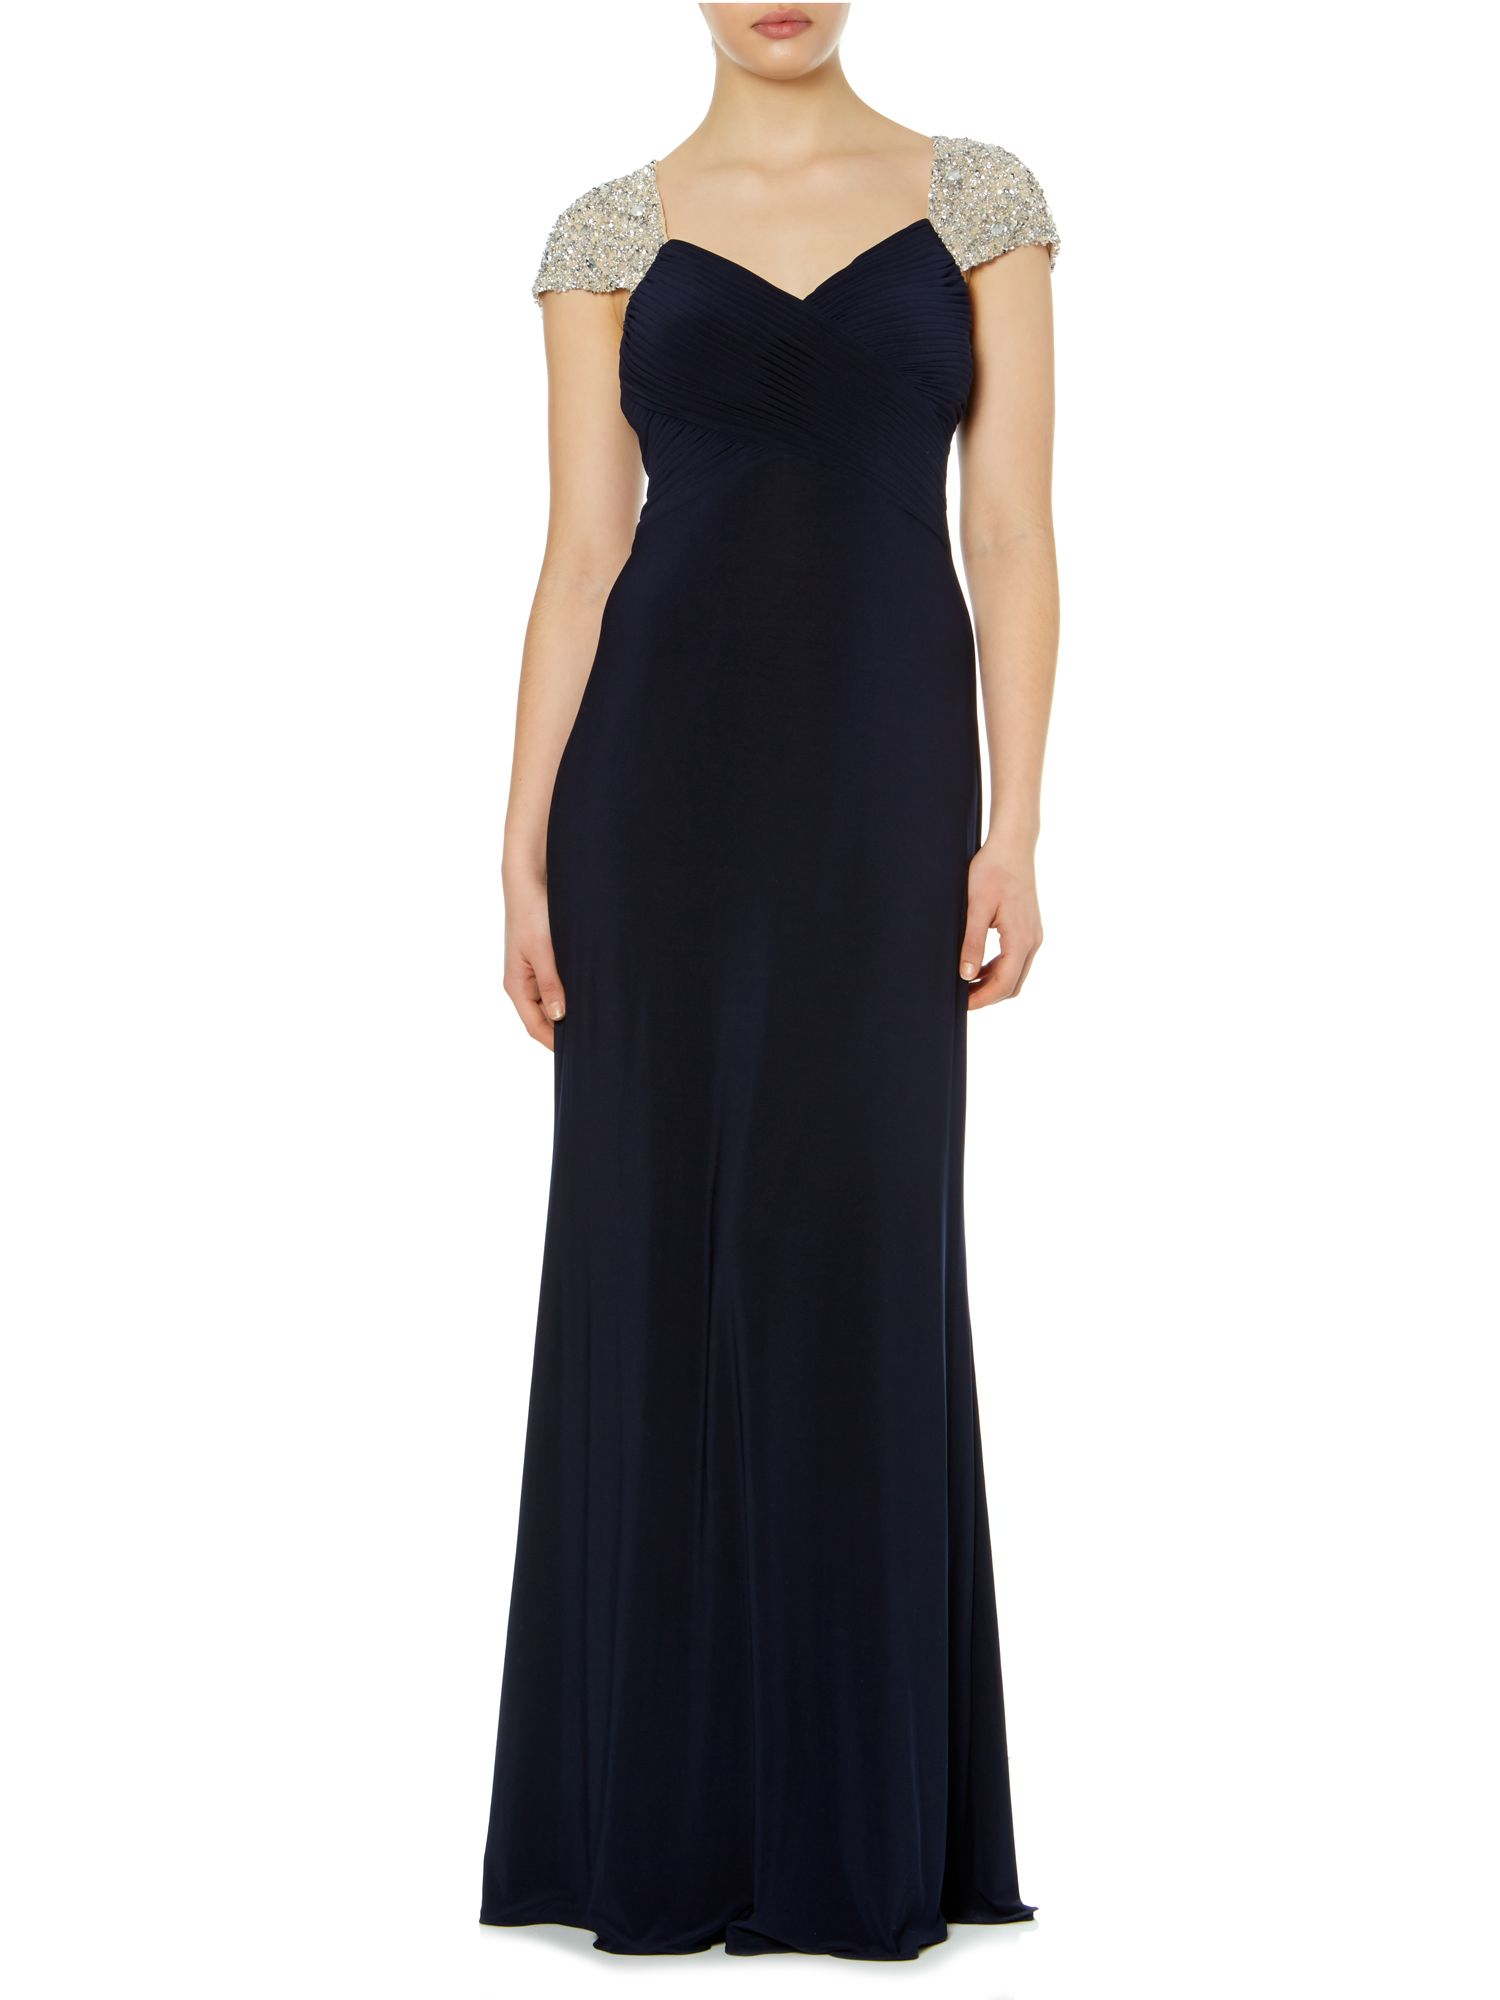 Jewel cap sleeve rouched evening dress